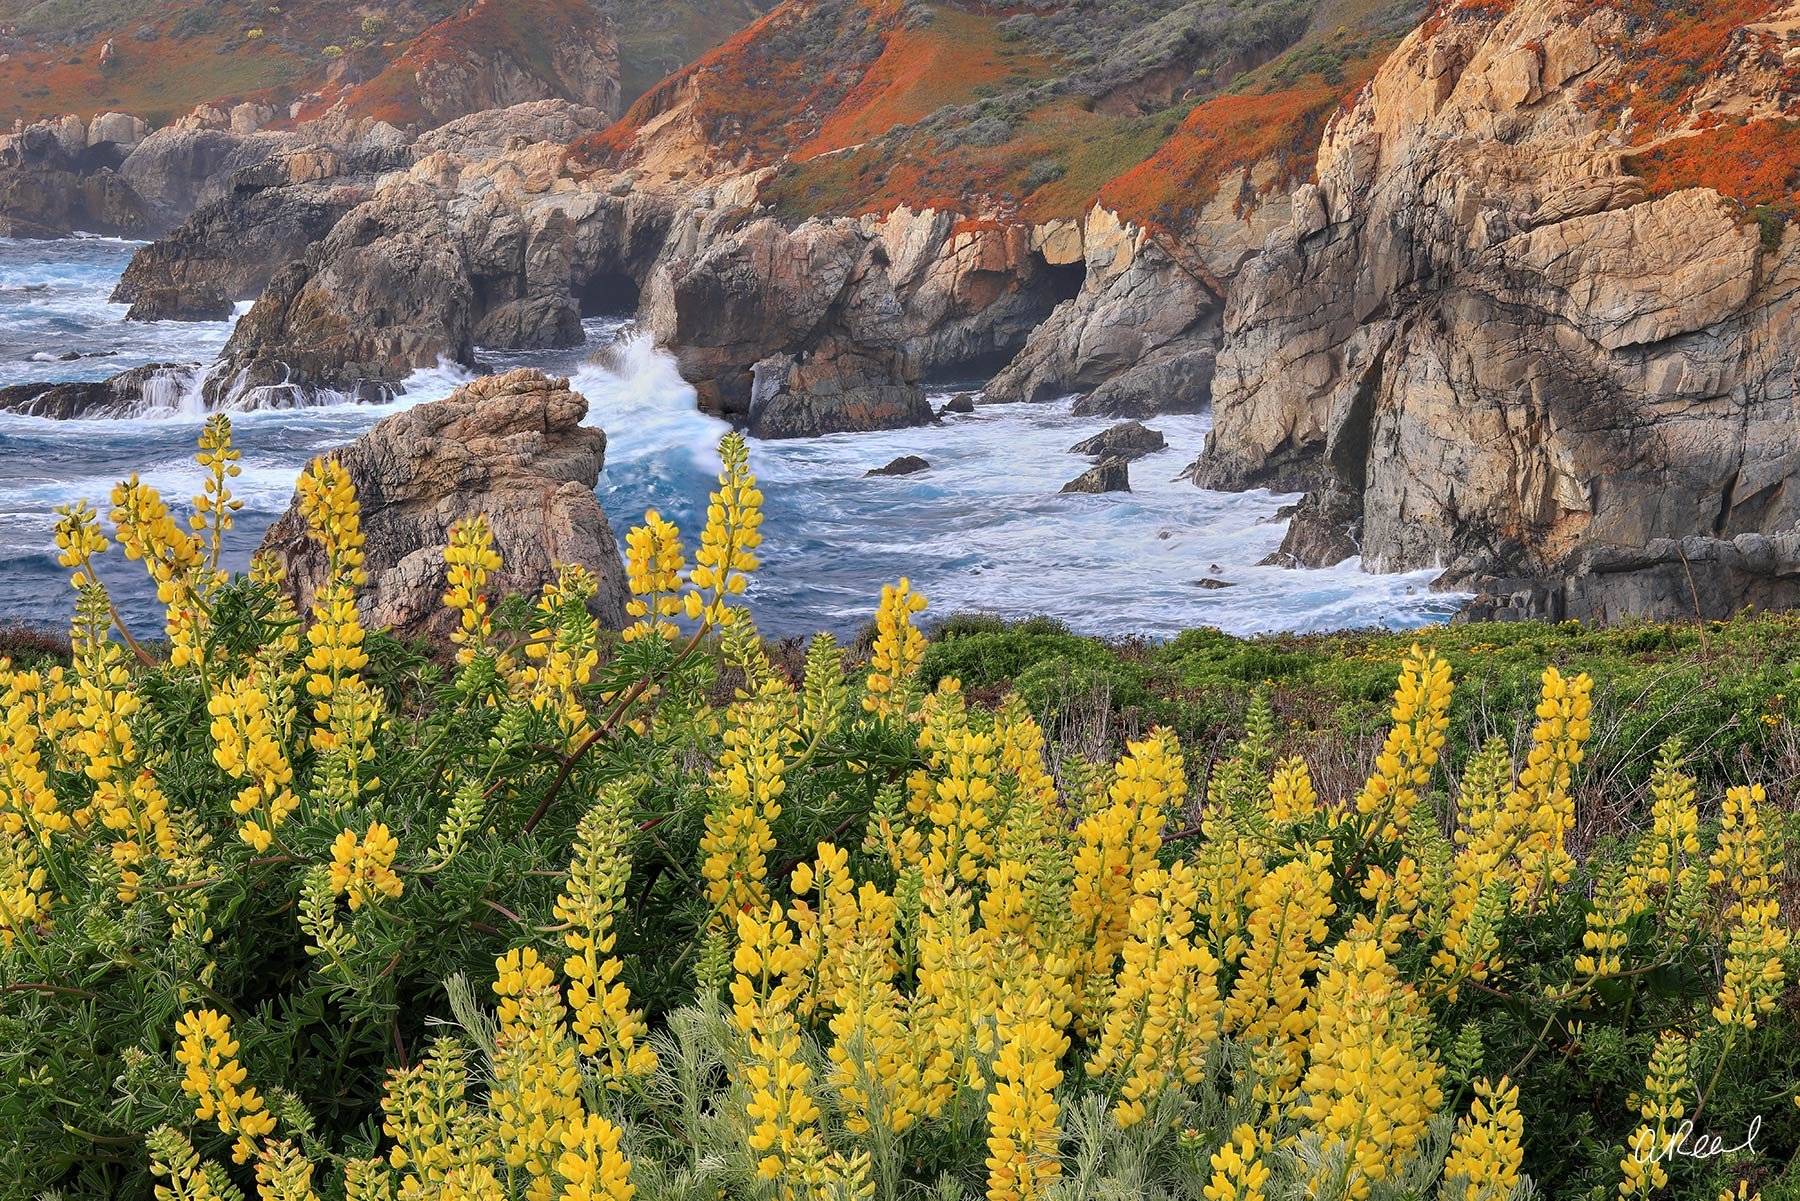 Adorn your walls with Aaron Reed's limited edition photography print, California Dreaming, from his Oceans & Rivers Luxury Art...